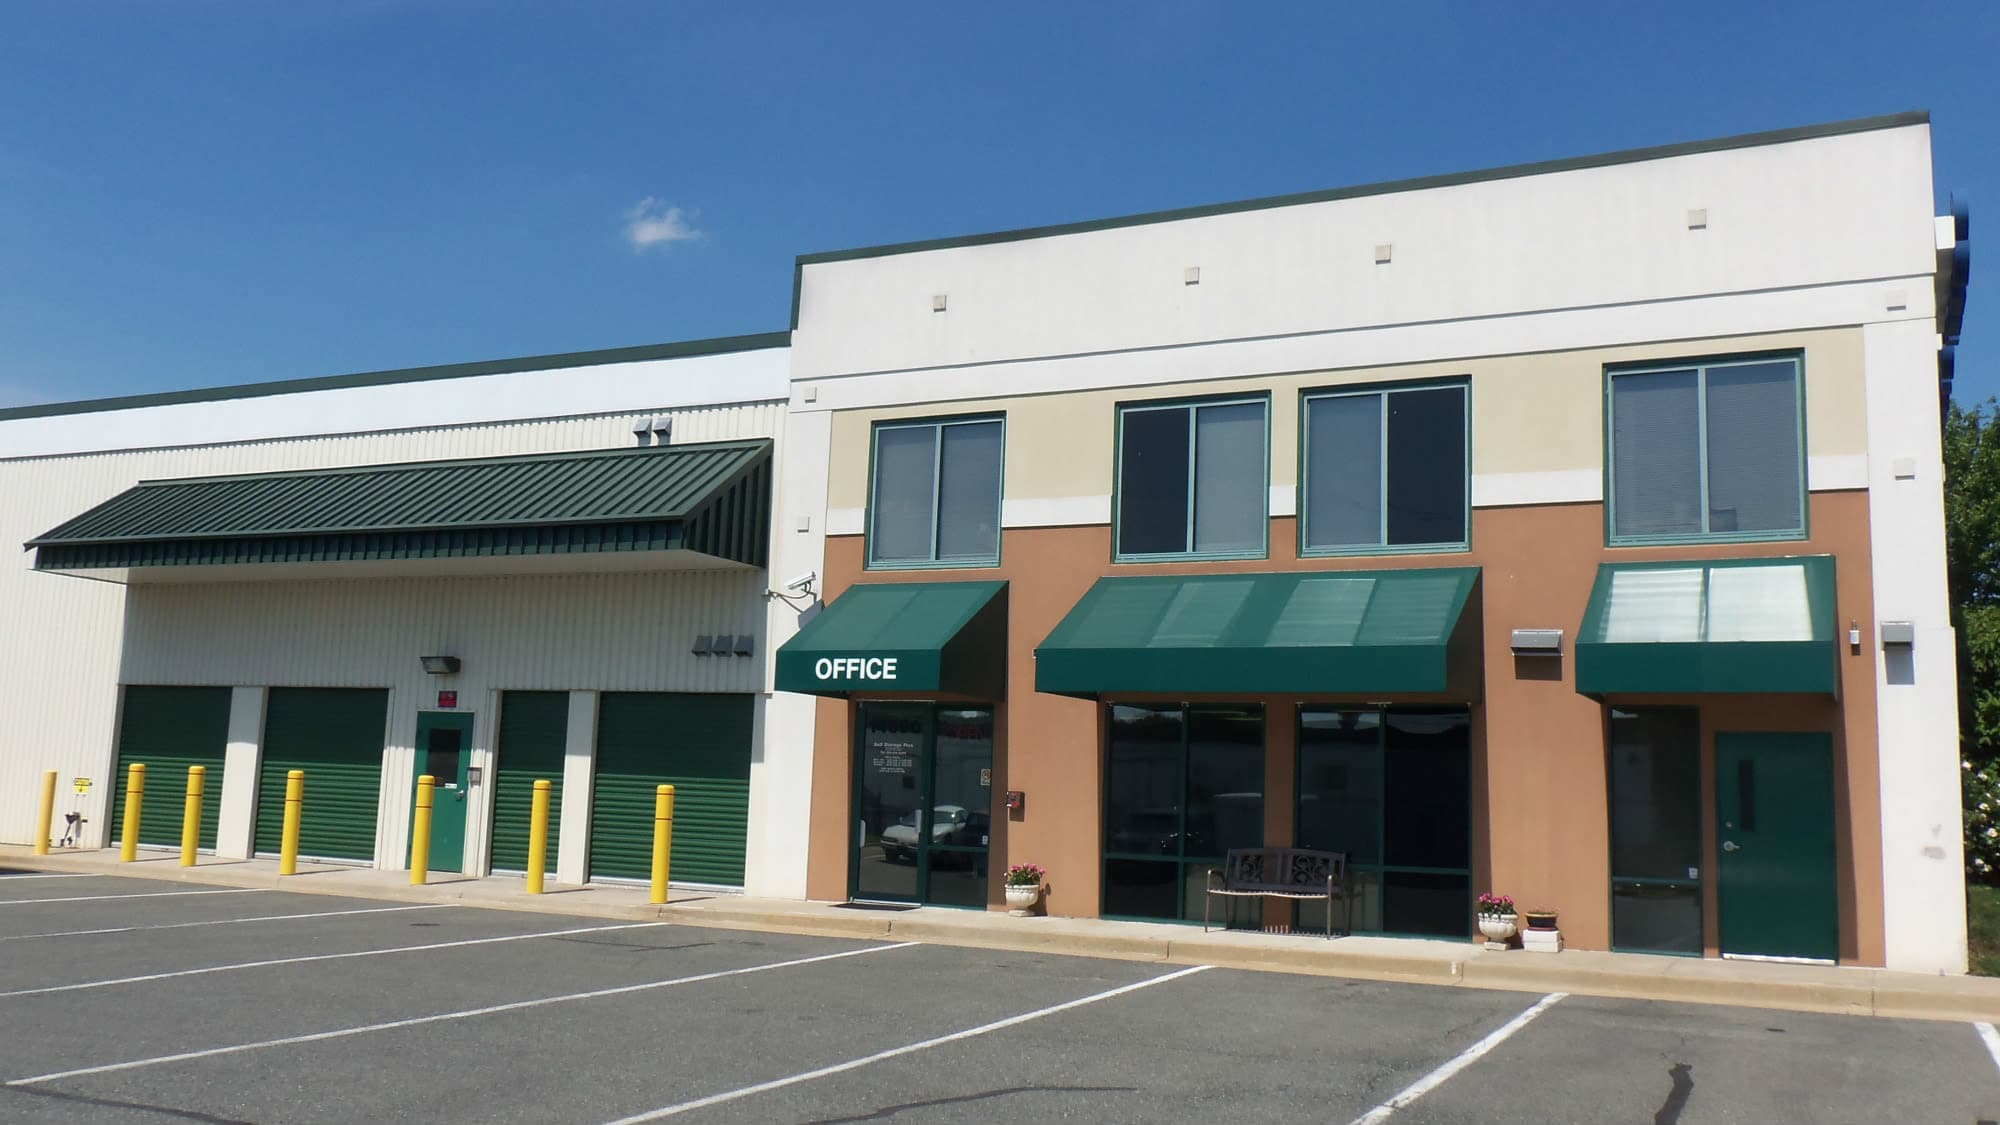 Exterior view of Self Storage Plus in Rockville, MD